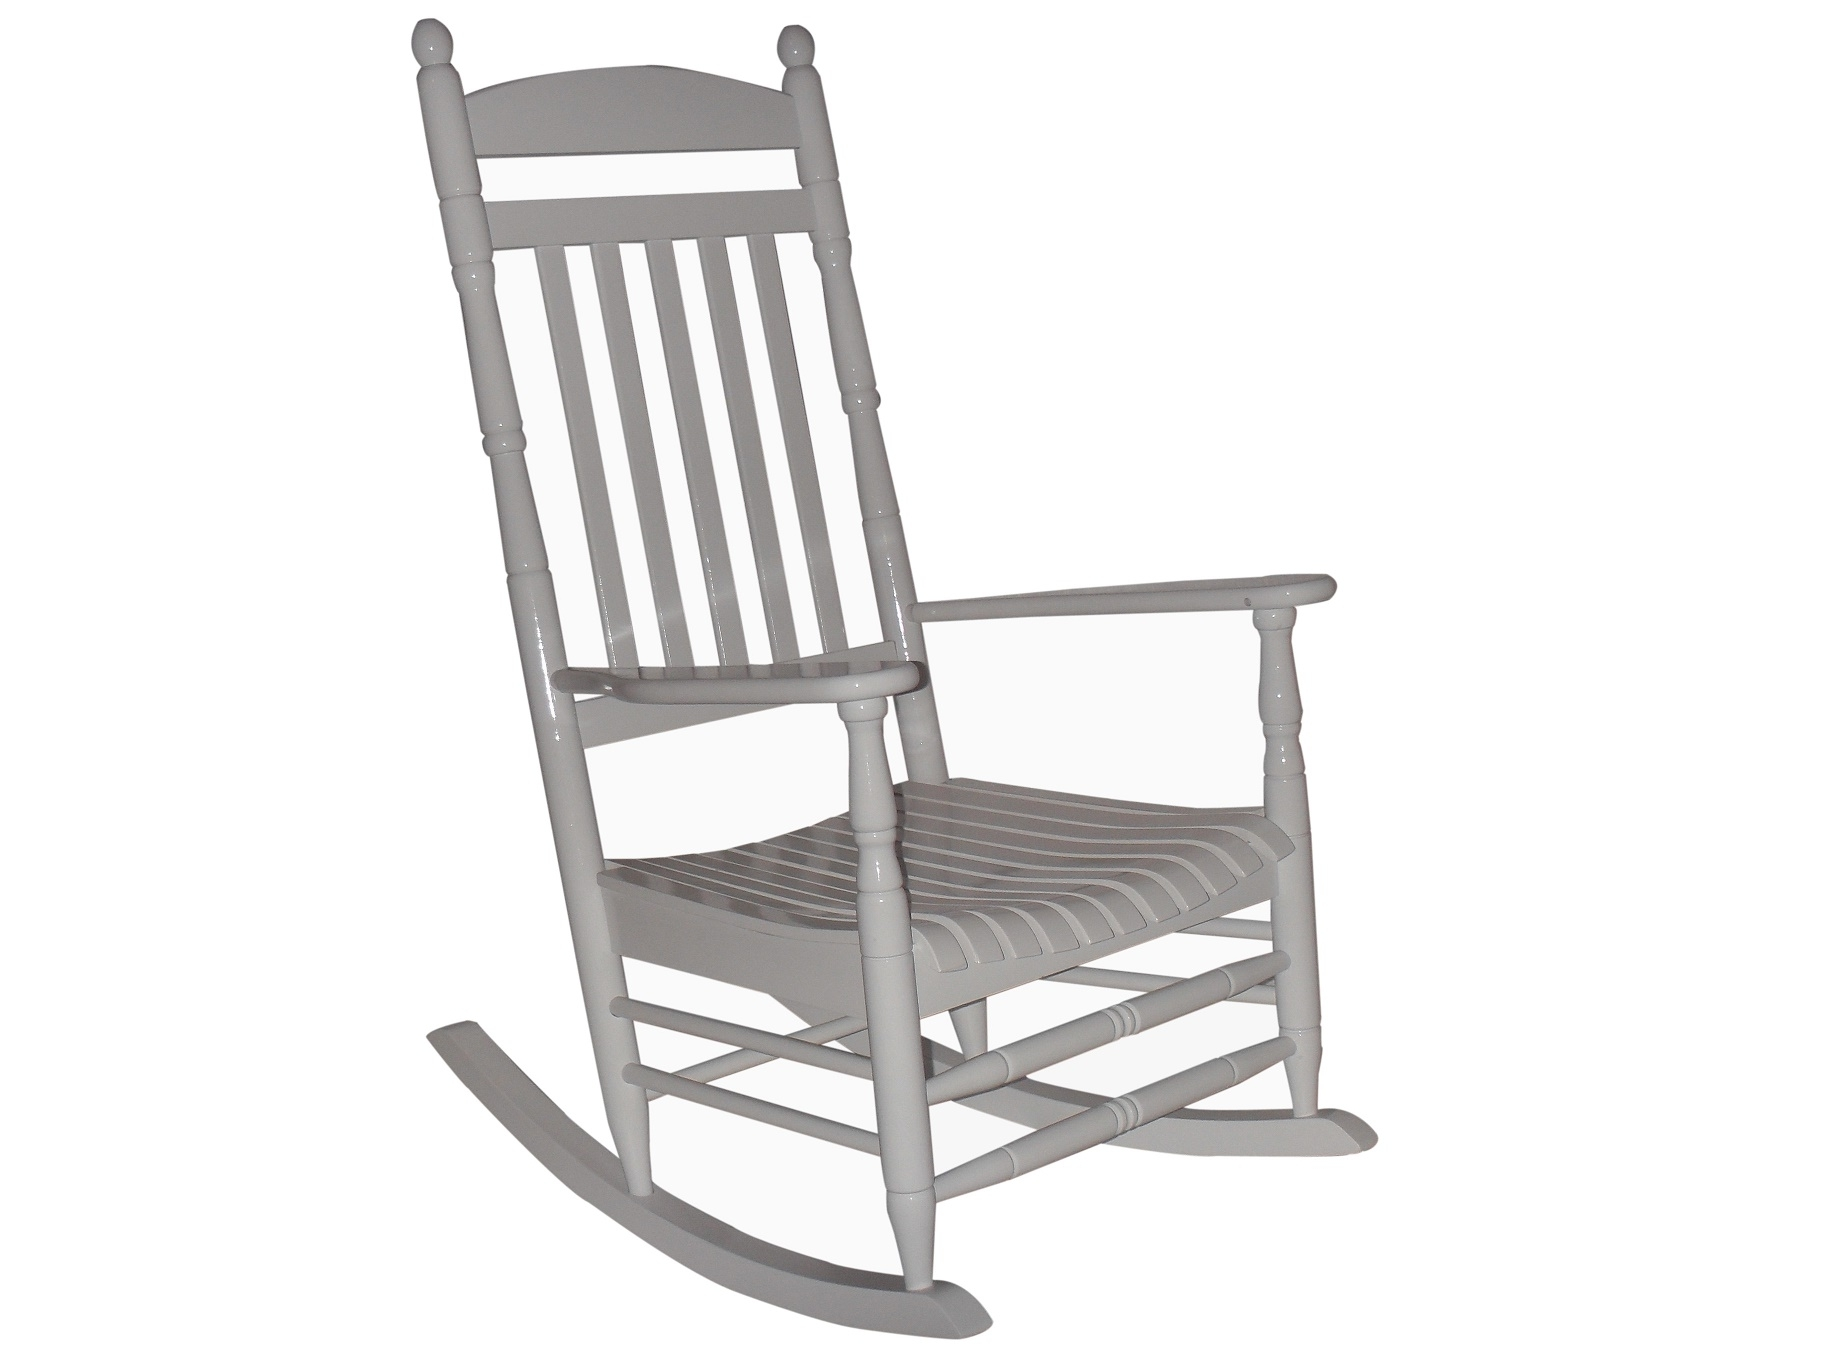 Rocking Chairs Adelaide Pertaining To Popular Adirondack Chairs Aust – American Rocking Chairs (View 15 of 15)